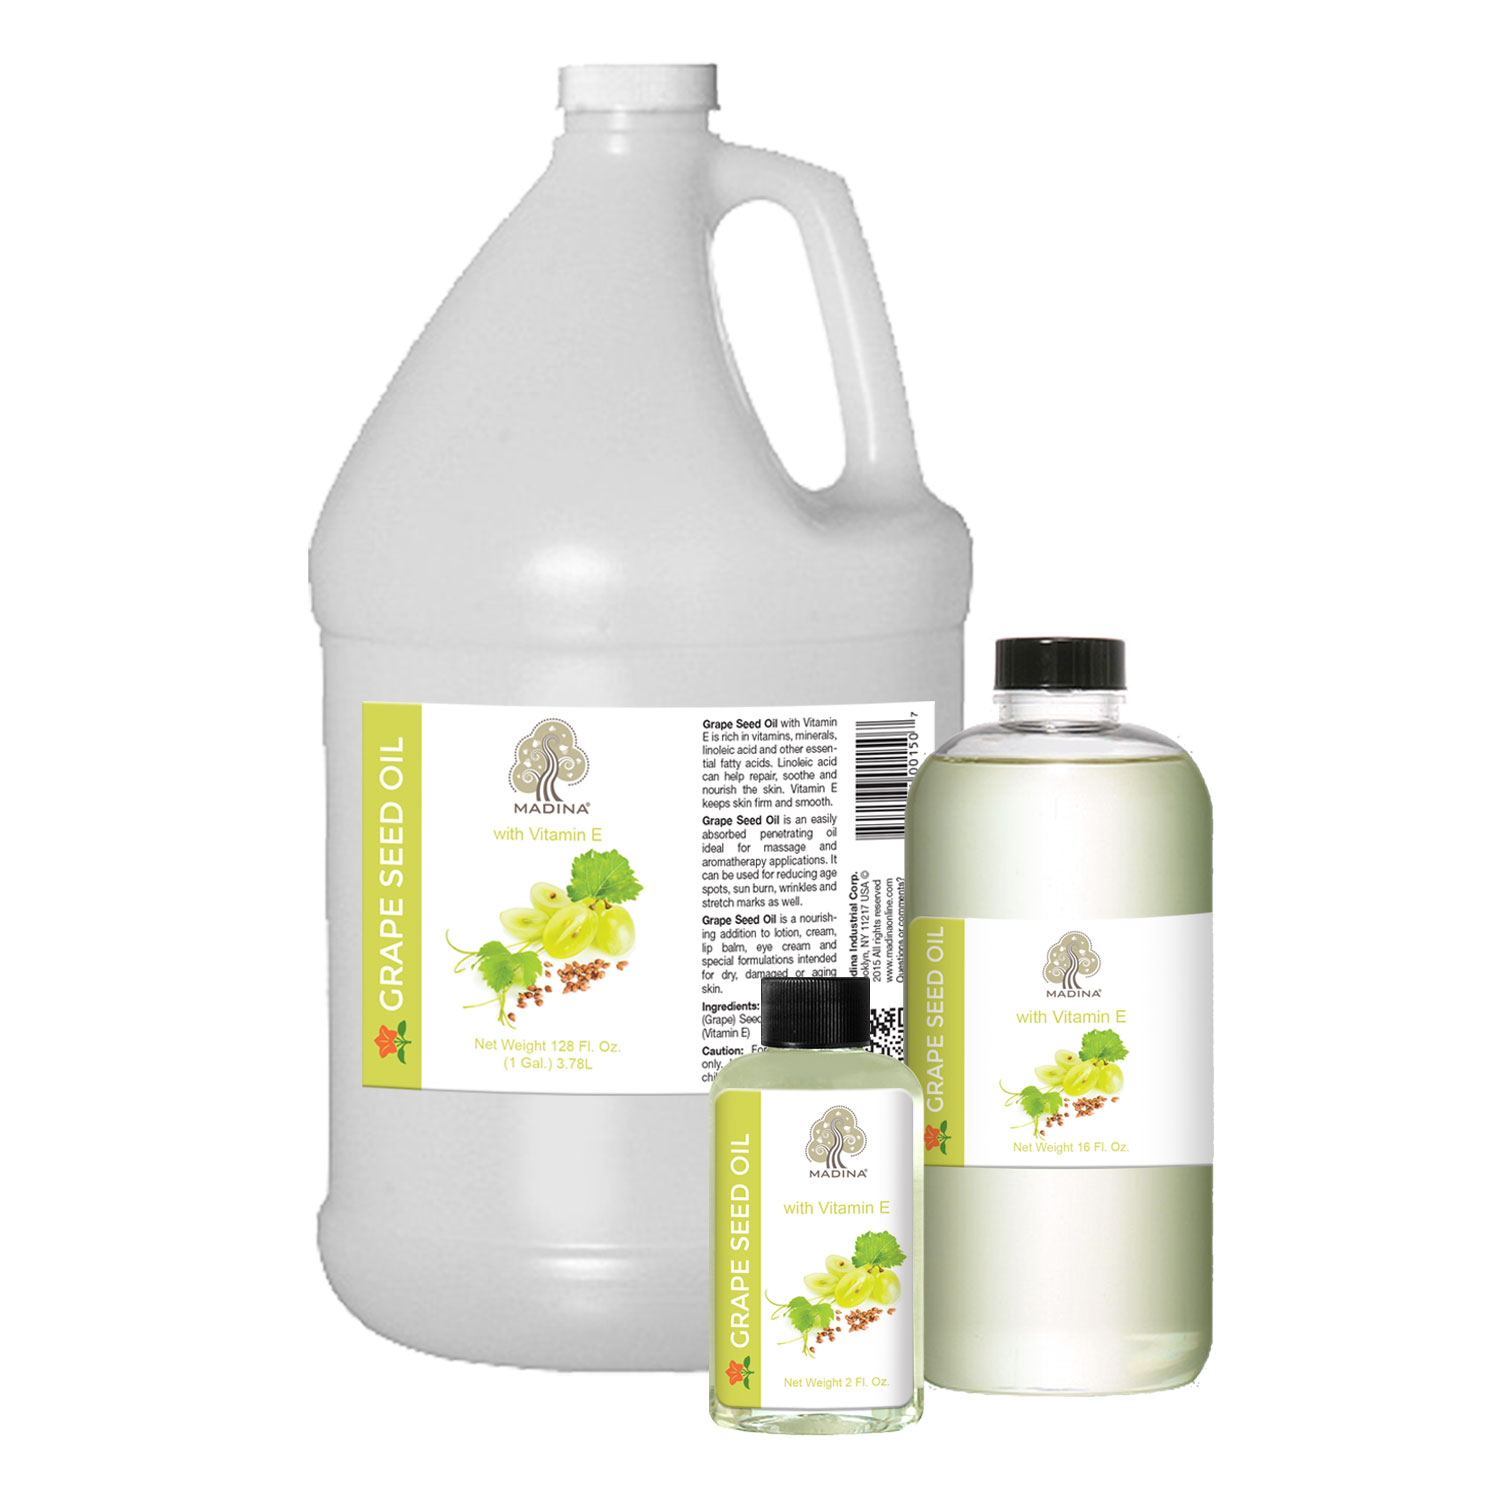 GRAPESEED OIL WITH VITAMIN E - 1 Gallon